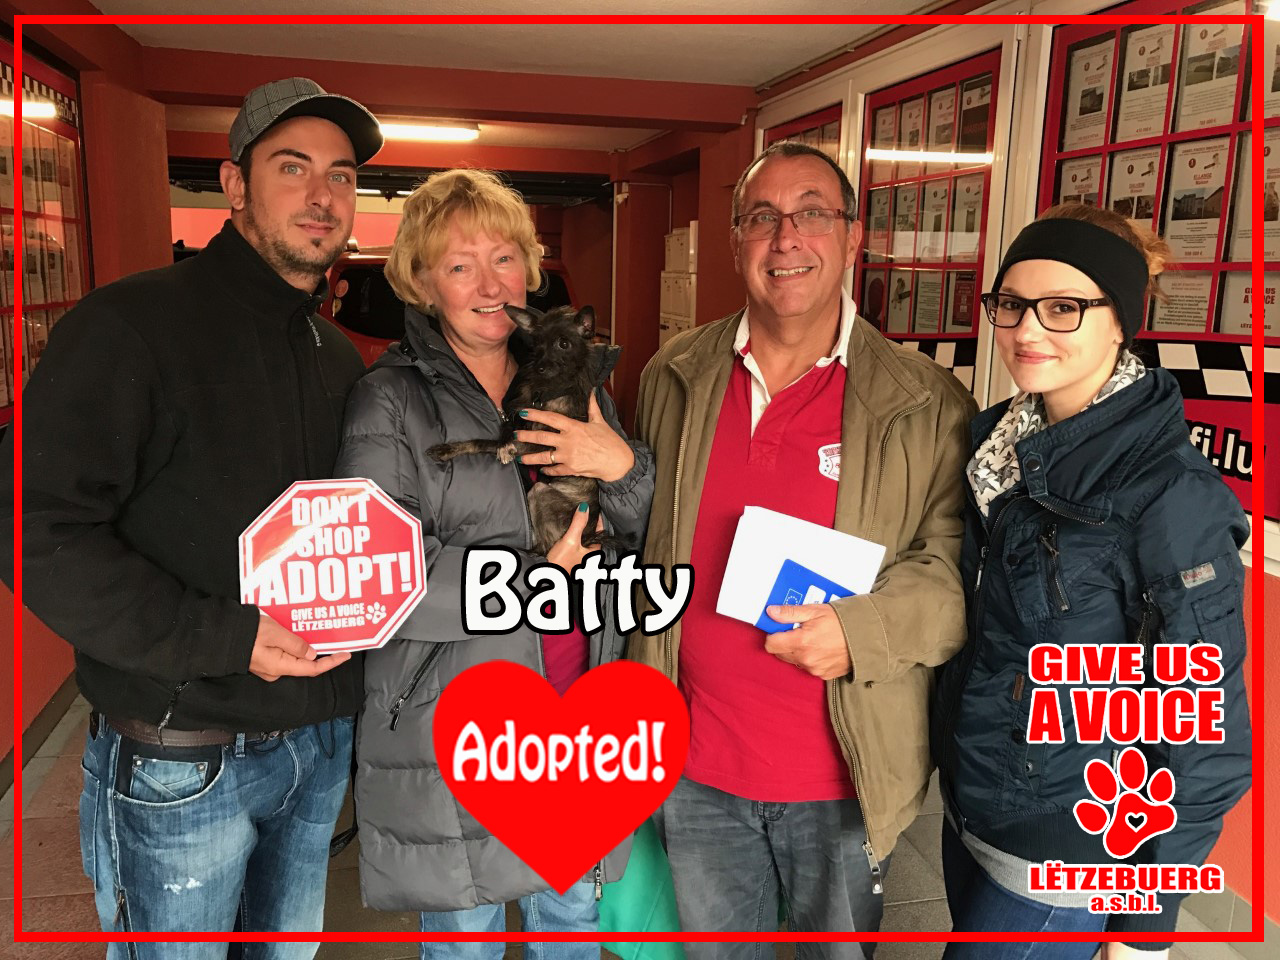 batty-adopted-copy